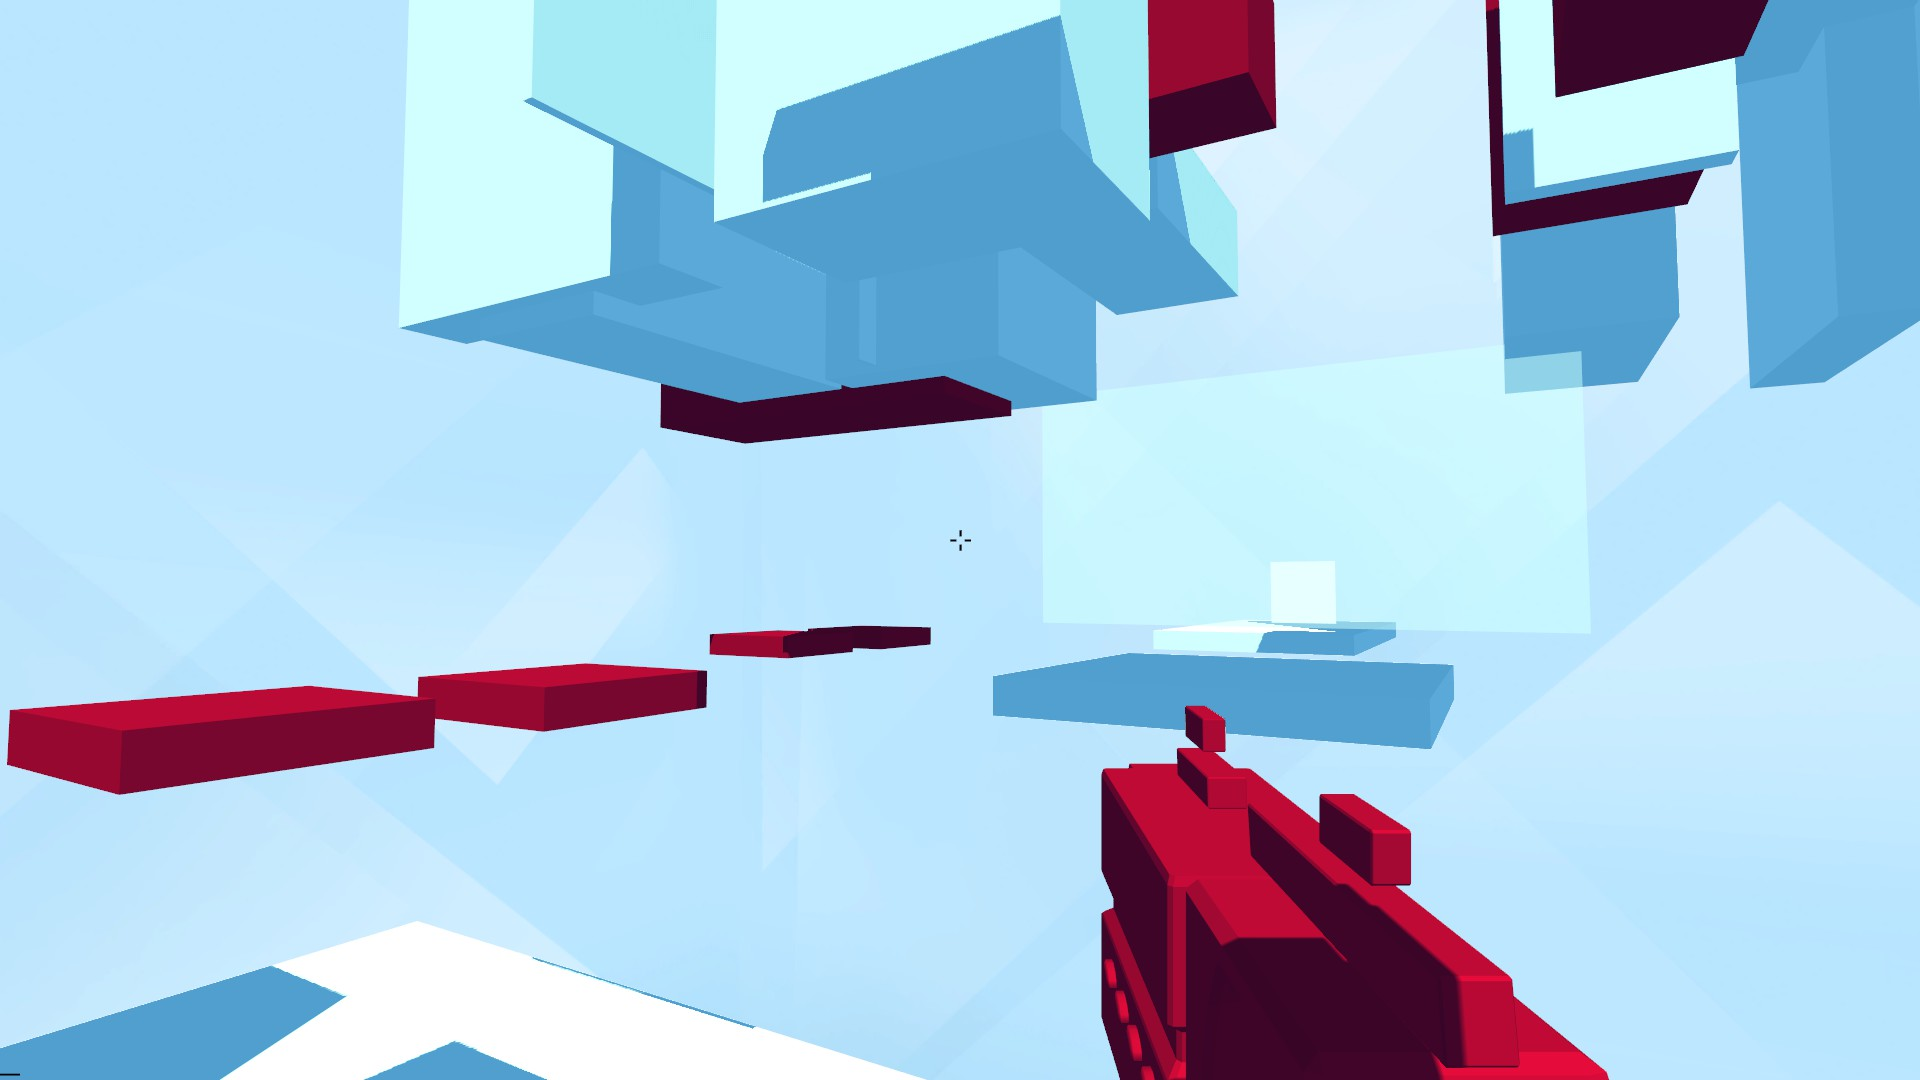 Glitchspace now available through Steam Early Access